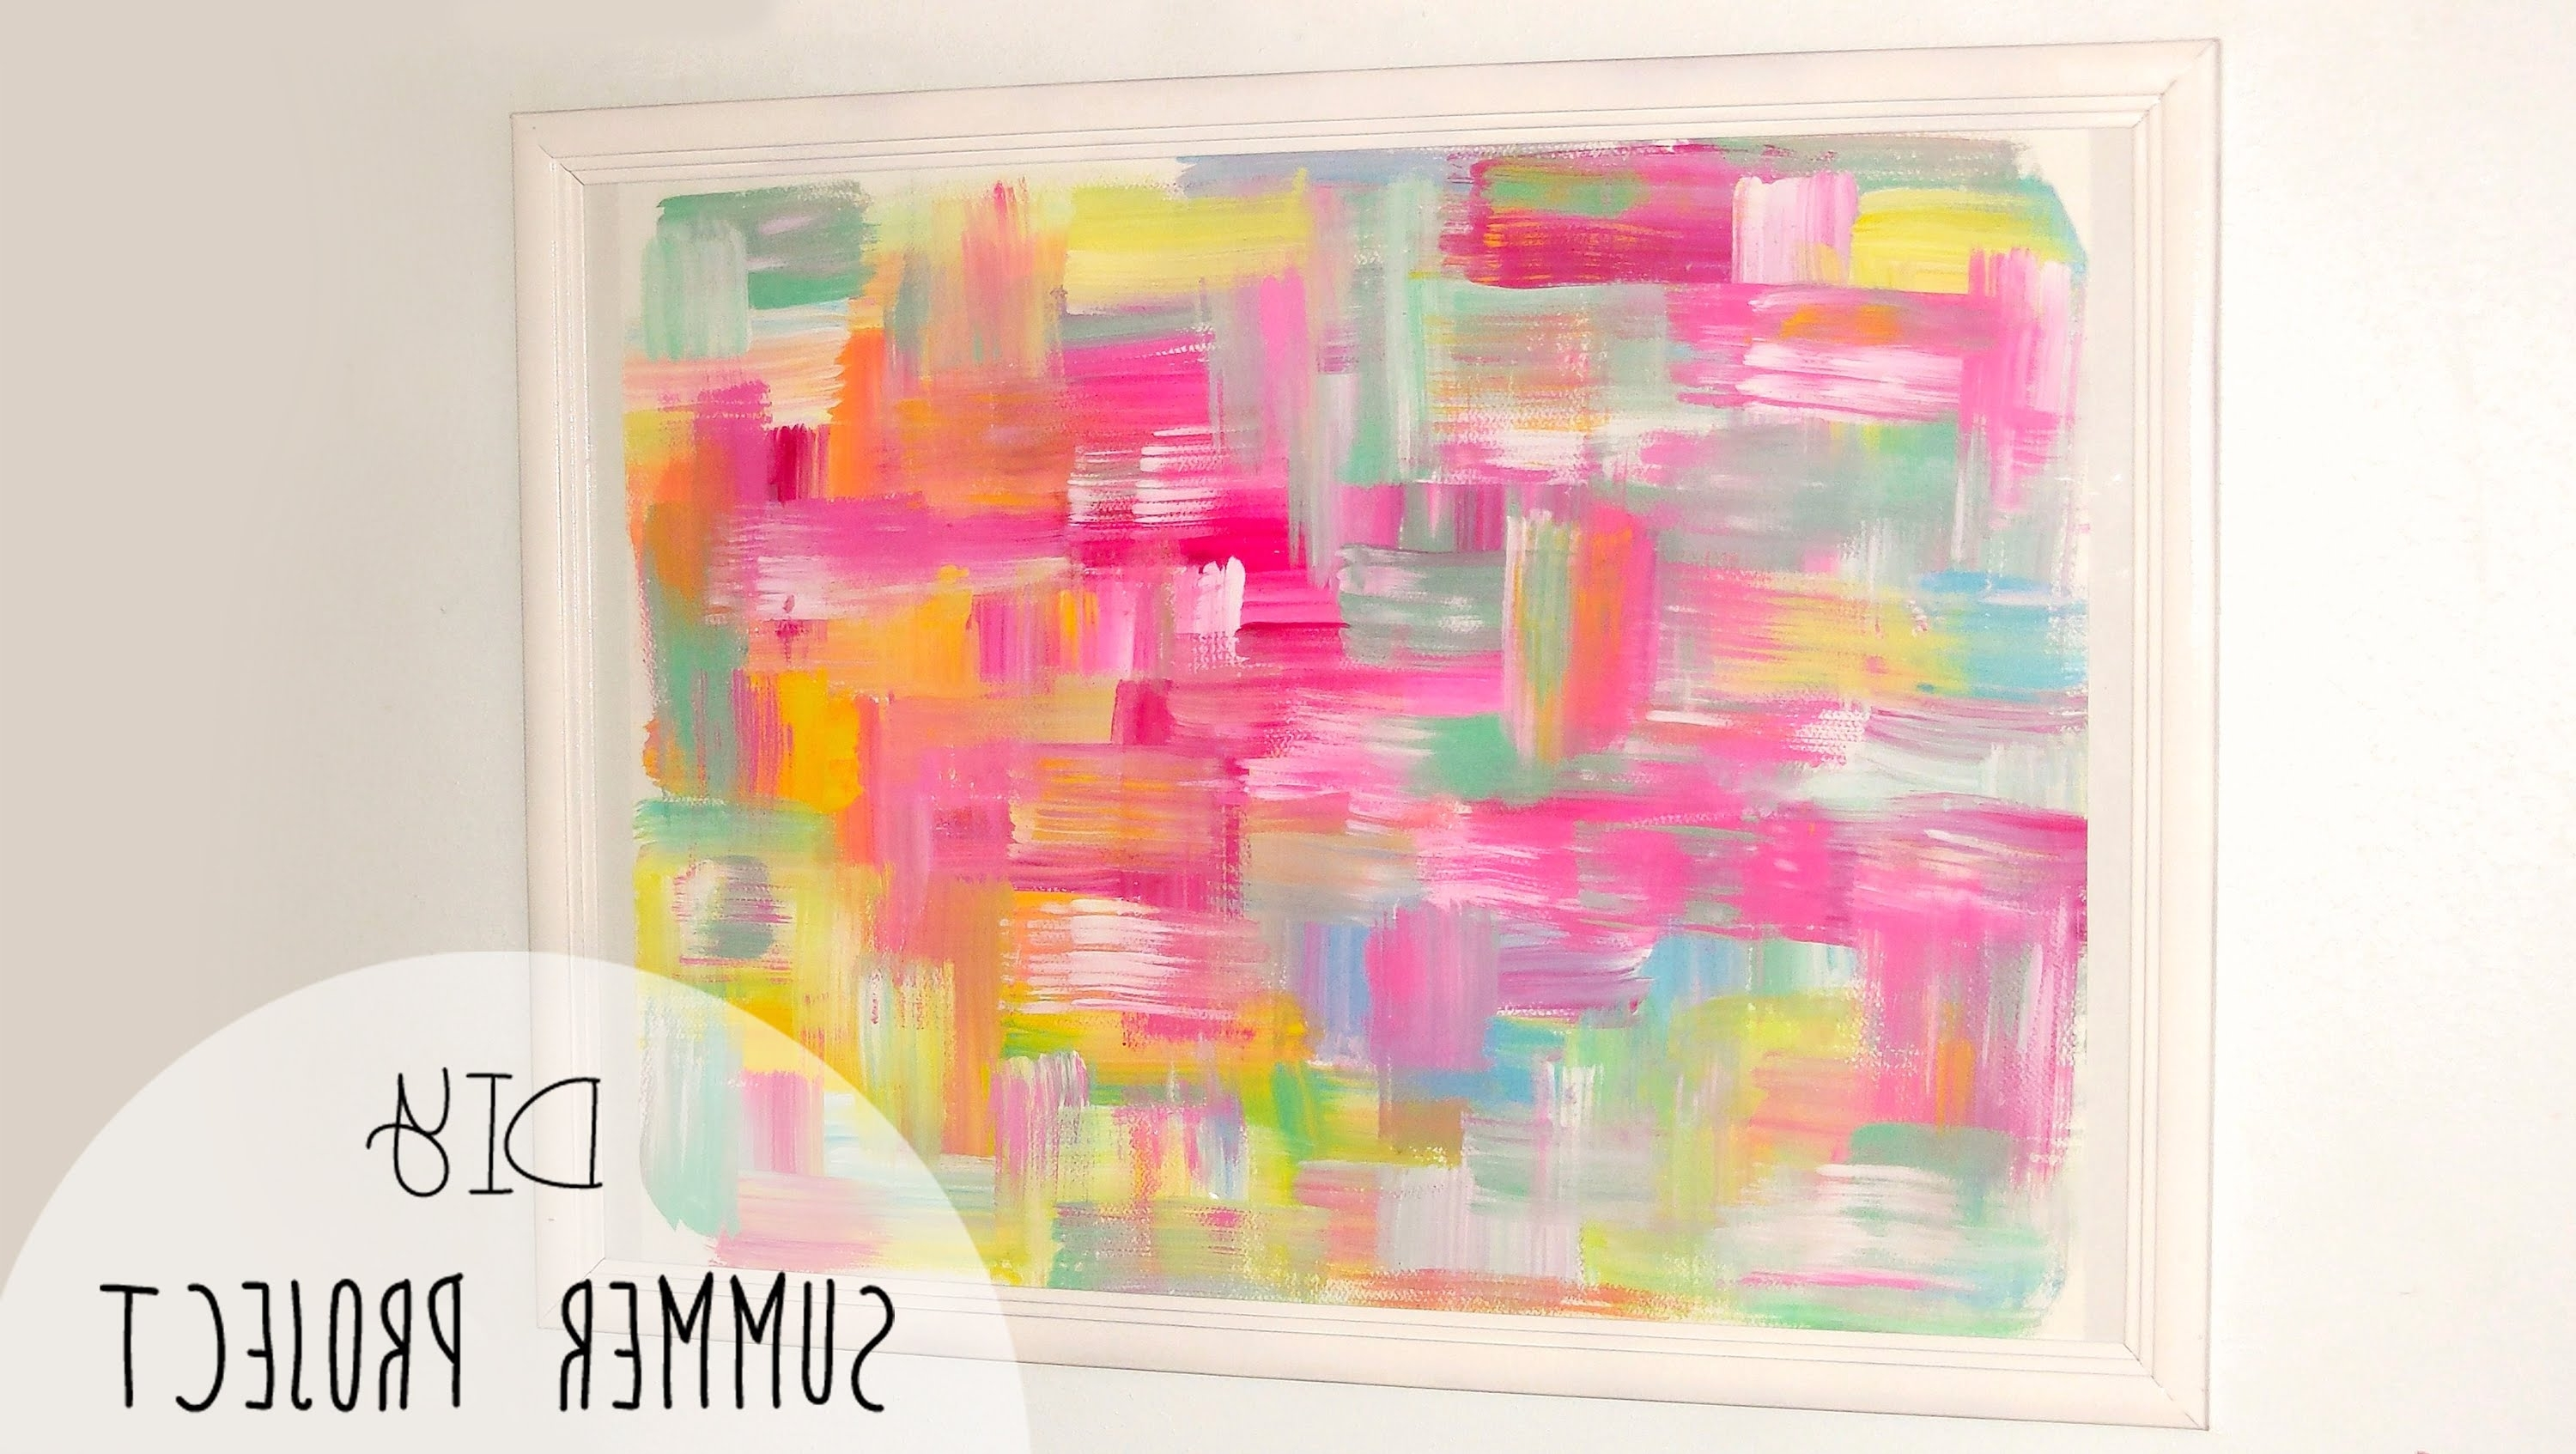 Diy Easy Room Decor! Abstract Wall Art – Youtube Within Most Recent Diy Abstract Wall Art (Gallery 3 of 15)